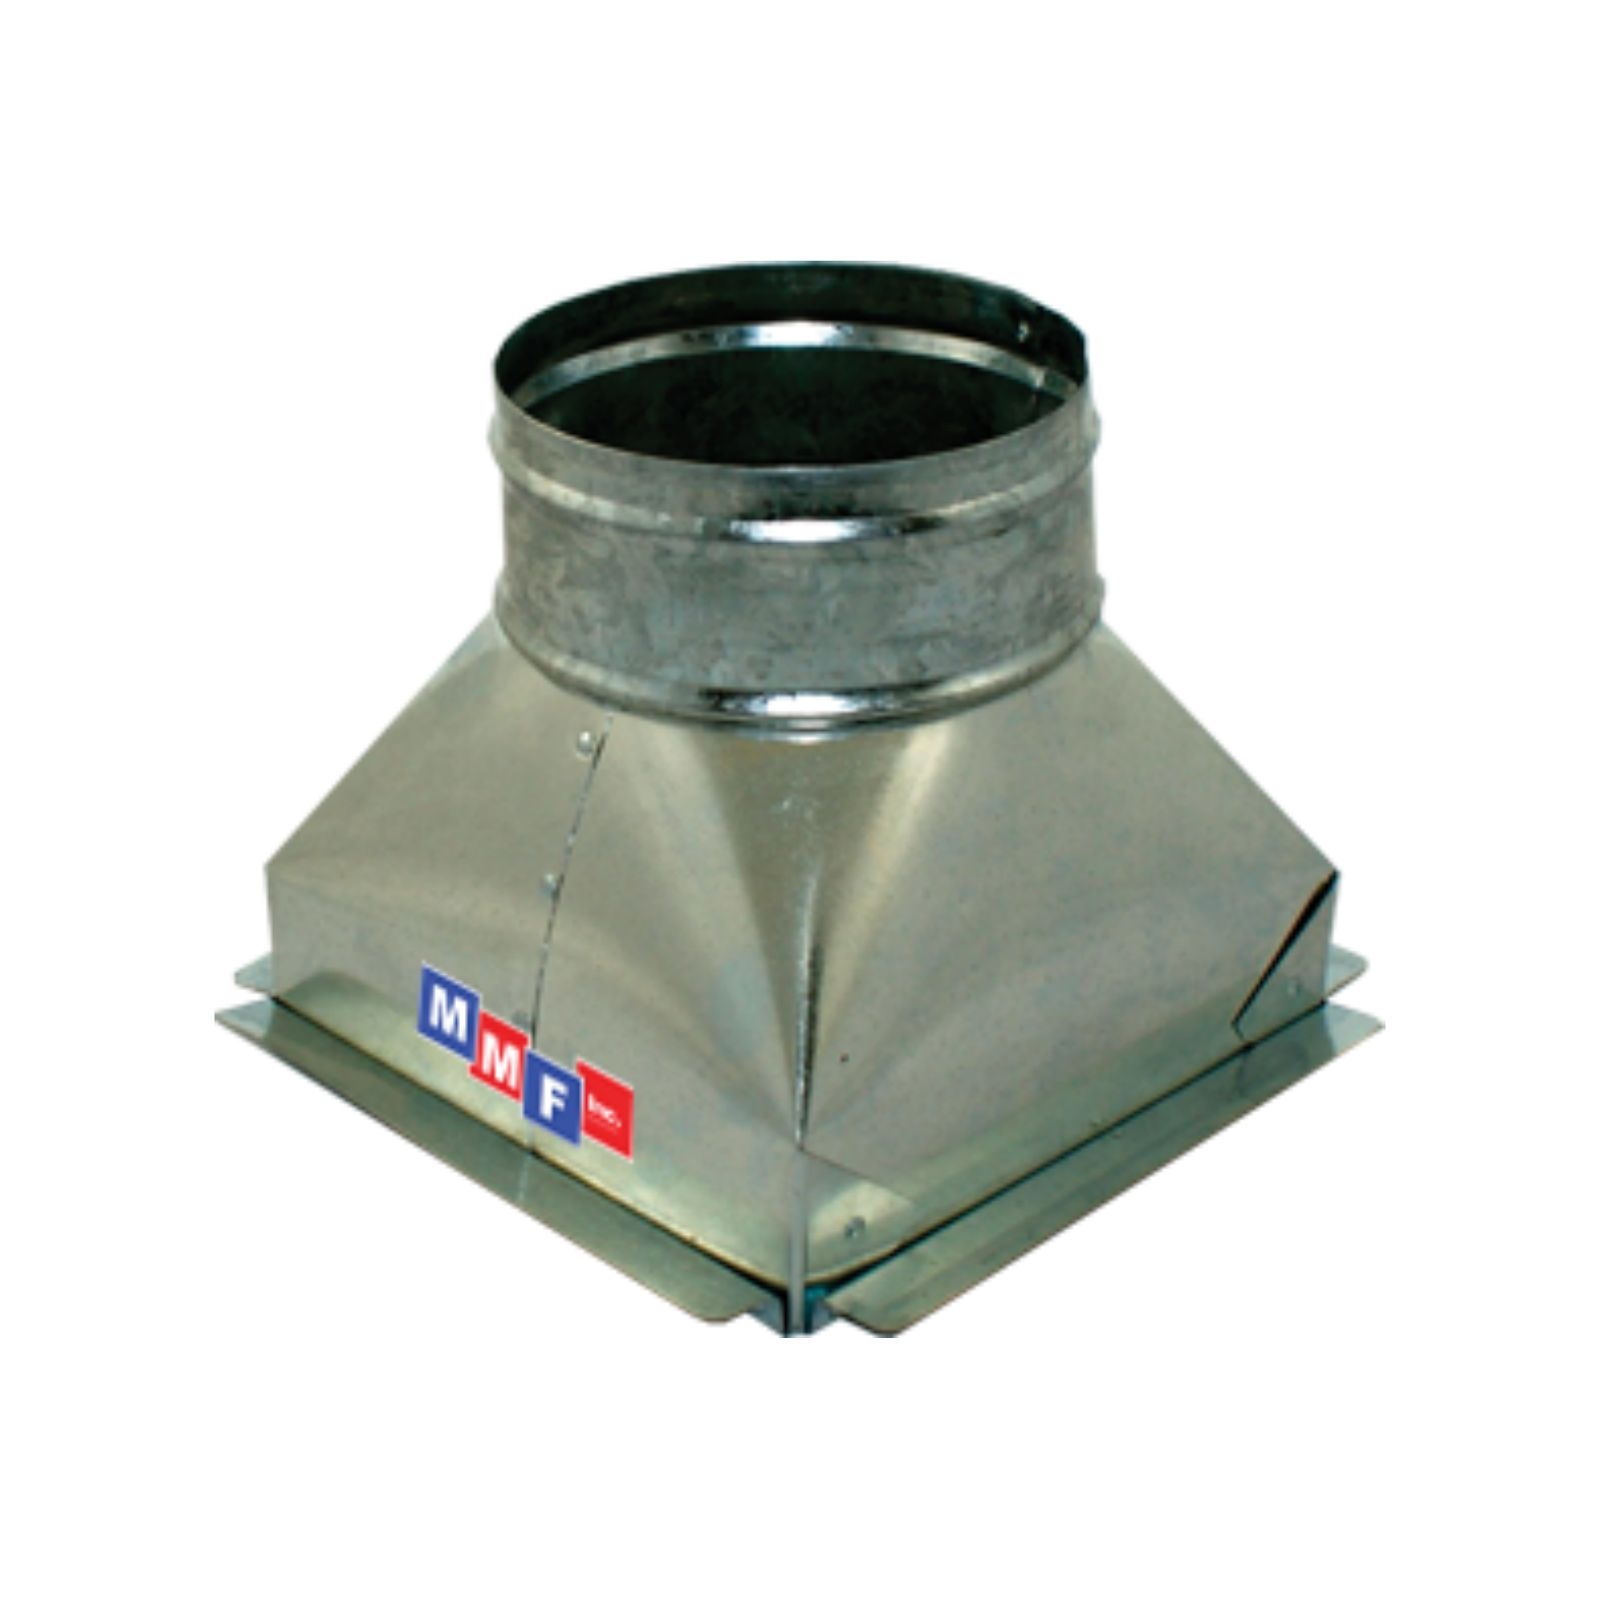 "Modular Metal BTSCG101006P - Sealed Tapered Ceiling Box 10"" X 10"" X 06"" Round - With Plaster Ground Flange - 30 Gauge"